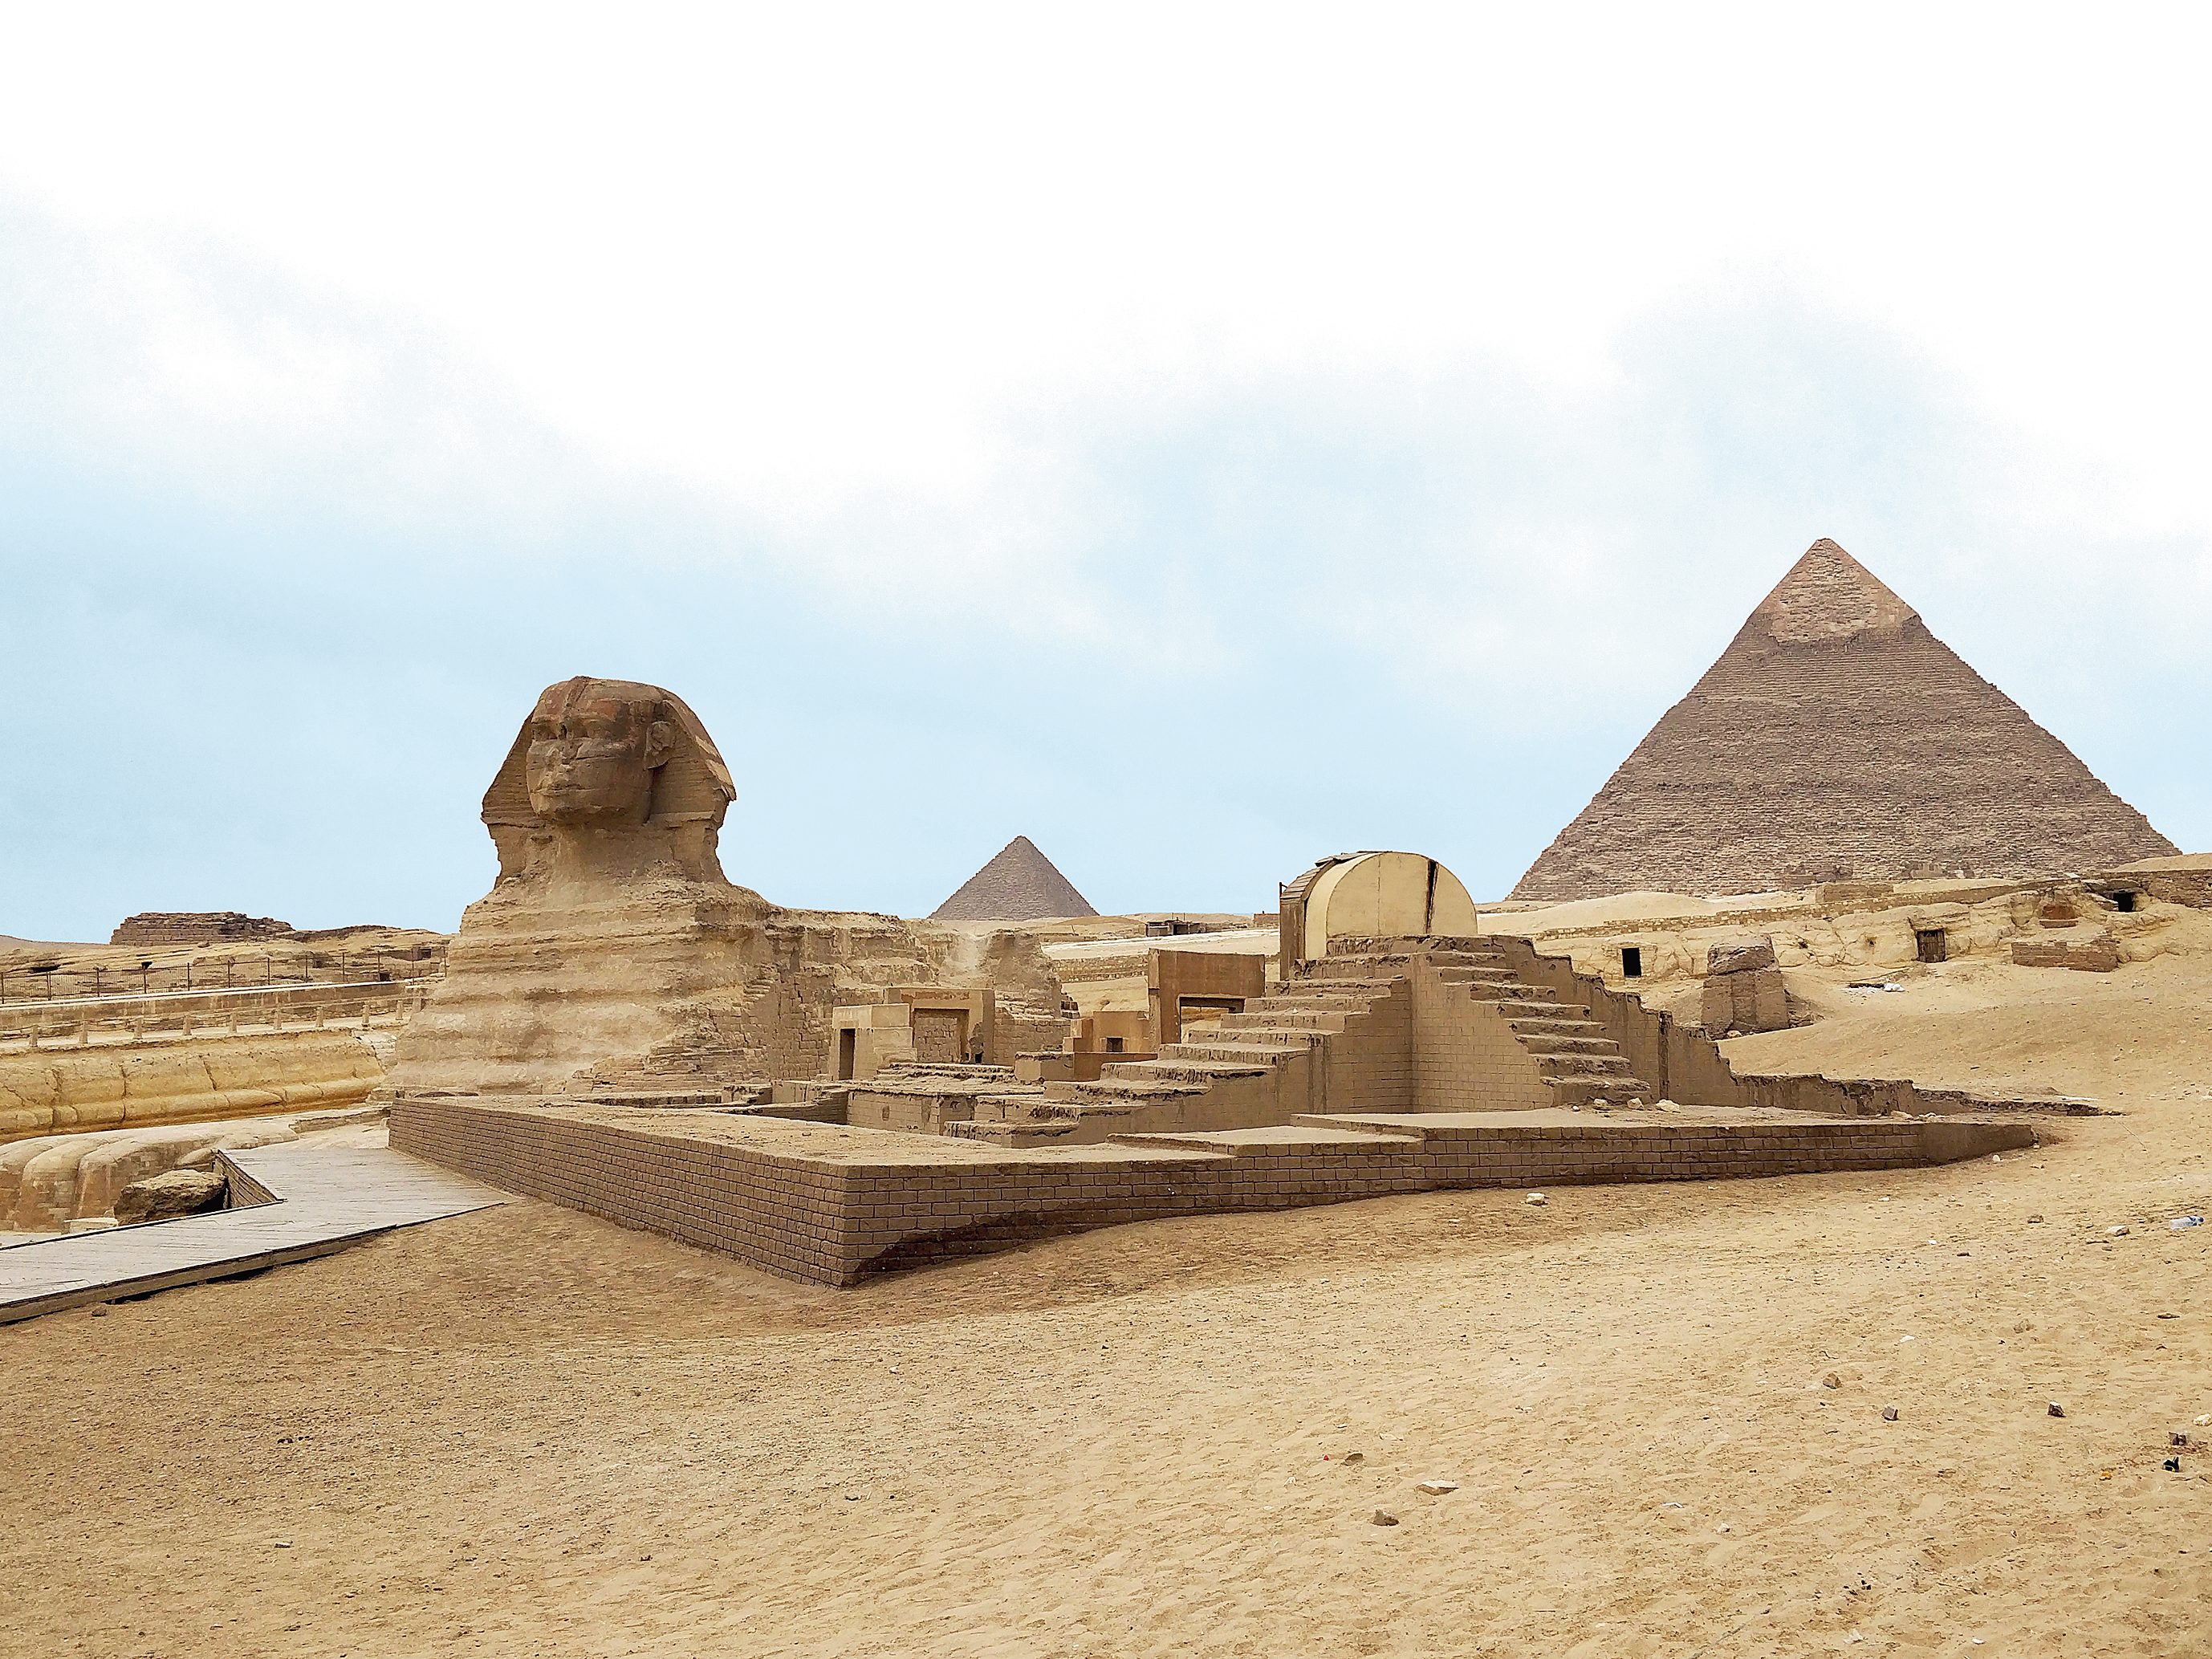 The Sphinx sits proudly in the backdrop of two pyramids at Giza.